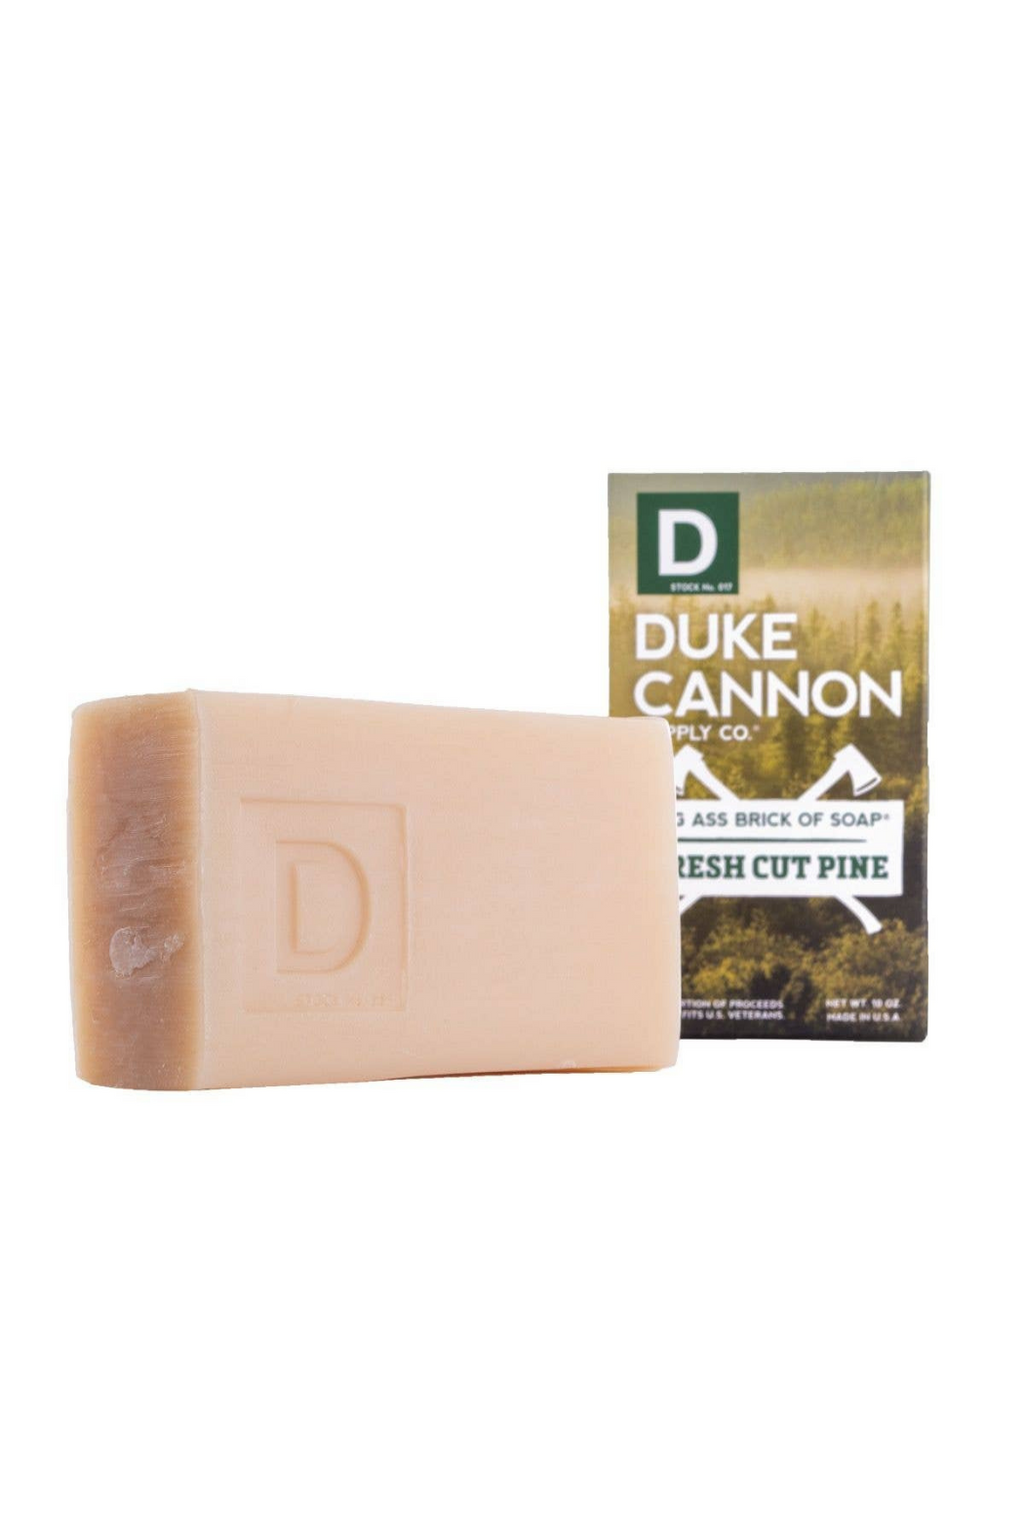 Duke Cannon Fresh Cut Pine Brick of Soap